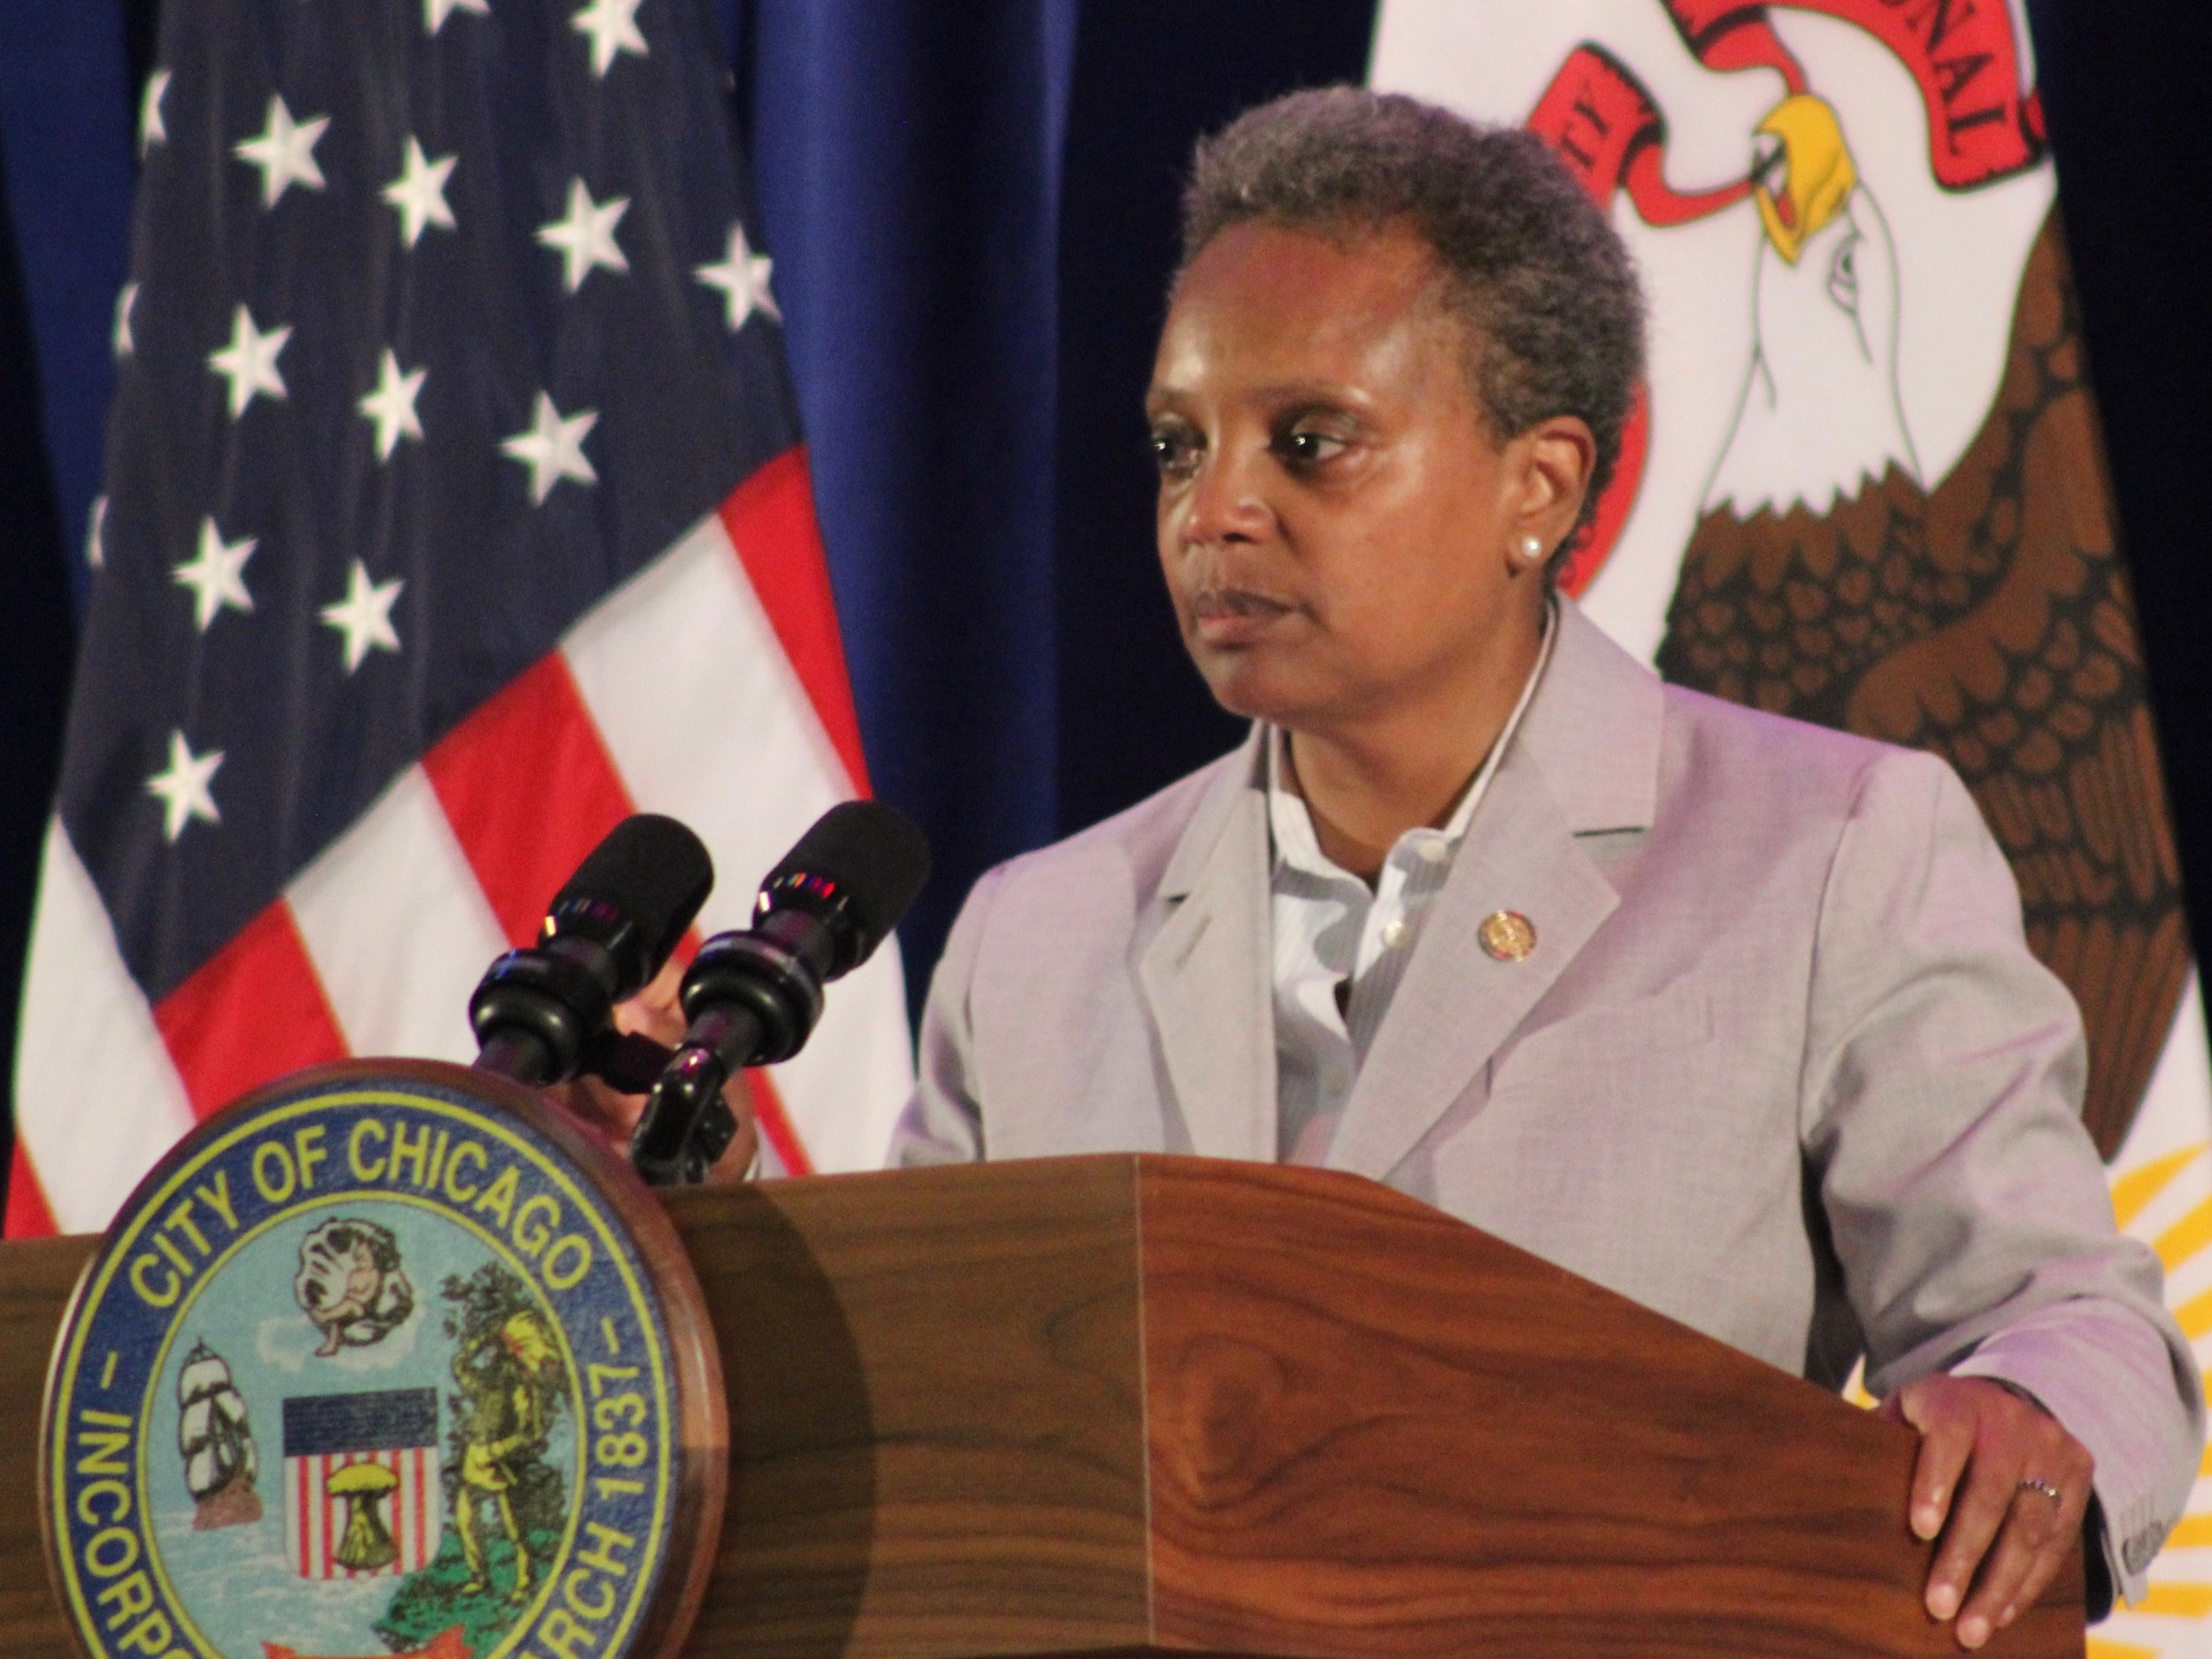 Chicago Mayor Lori Lightfoot speaks at an event memorializing the 1919 race riots Monday. (One Illinois/Ted Cox)